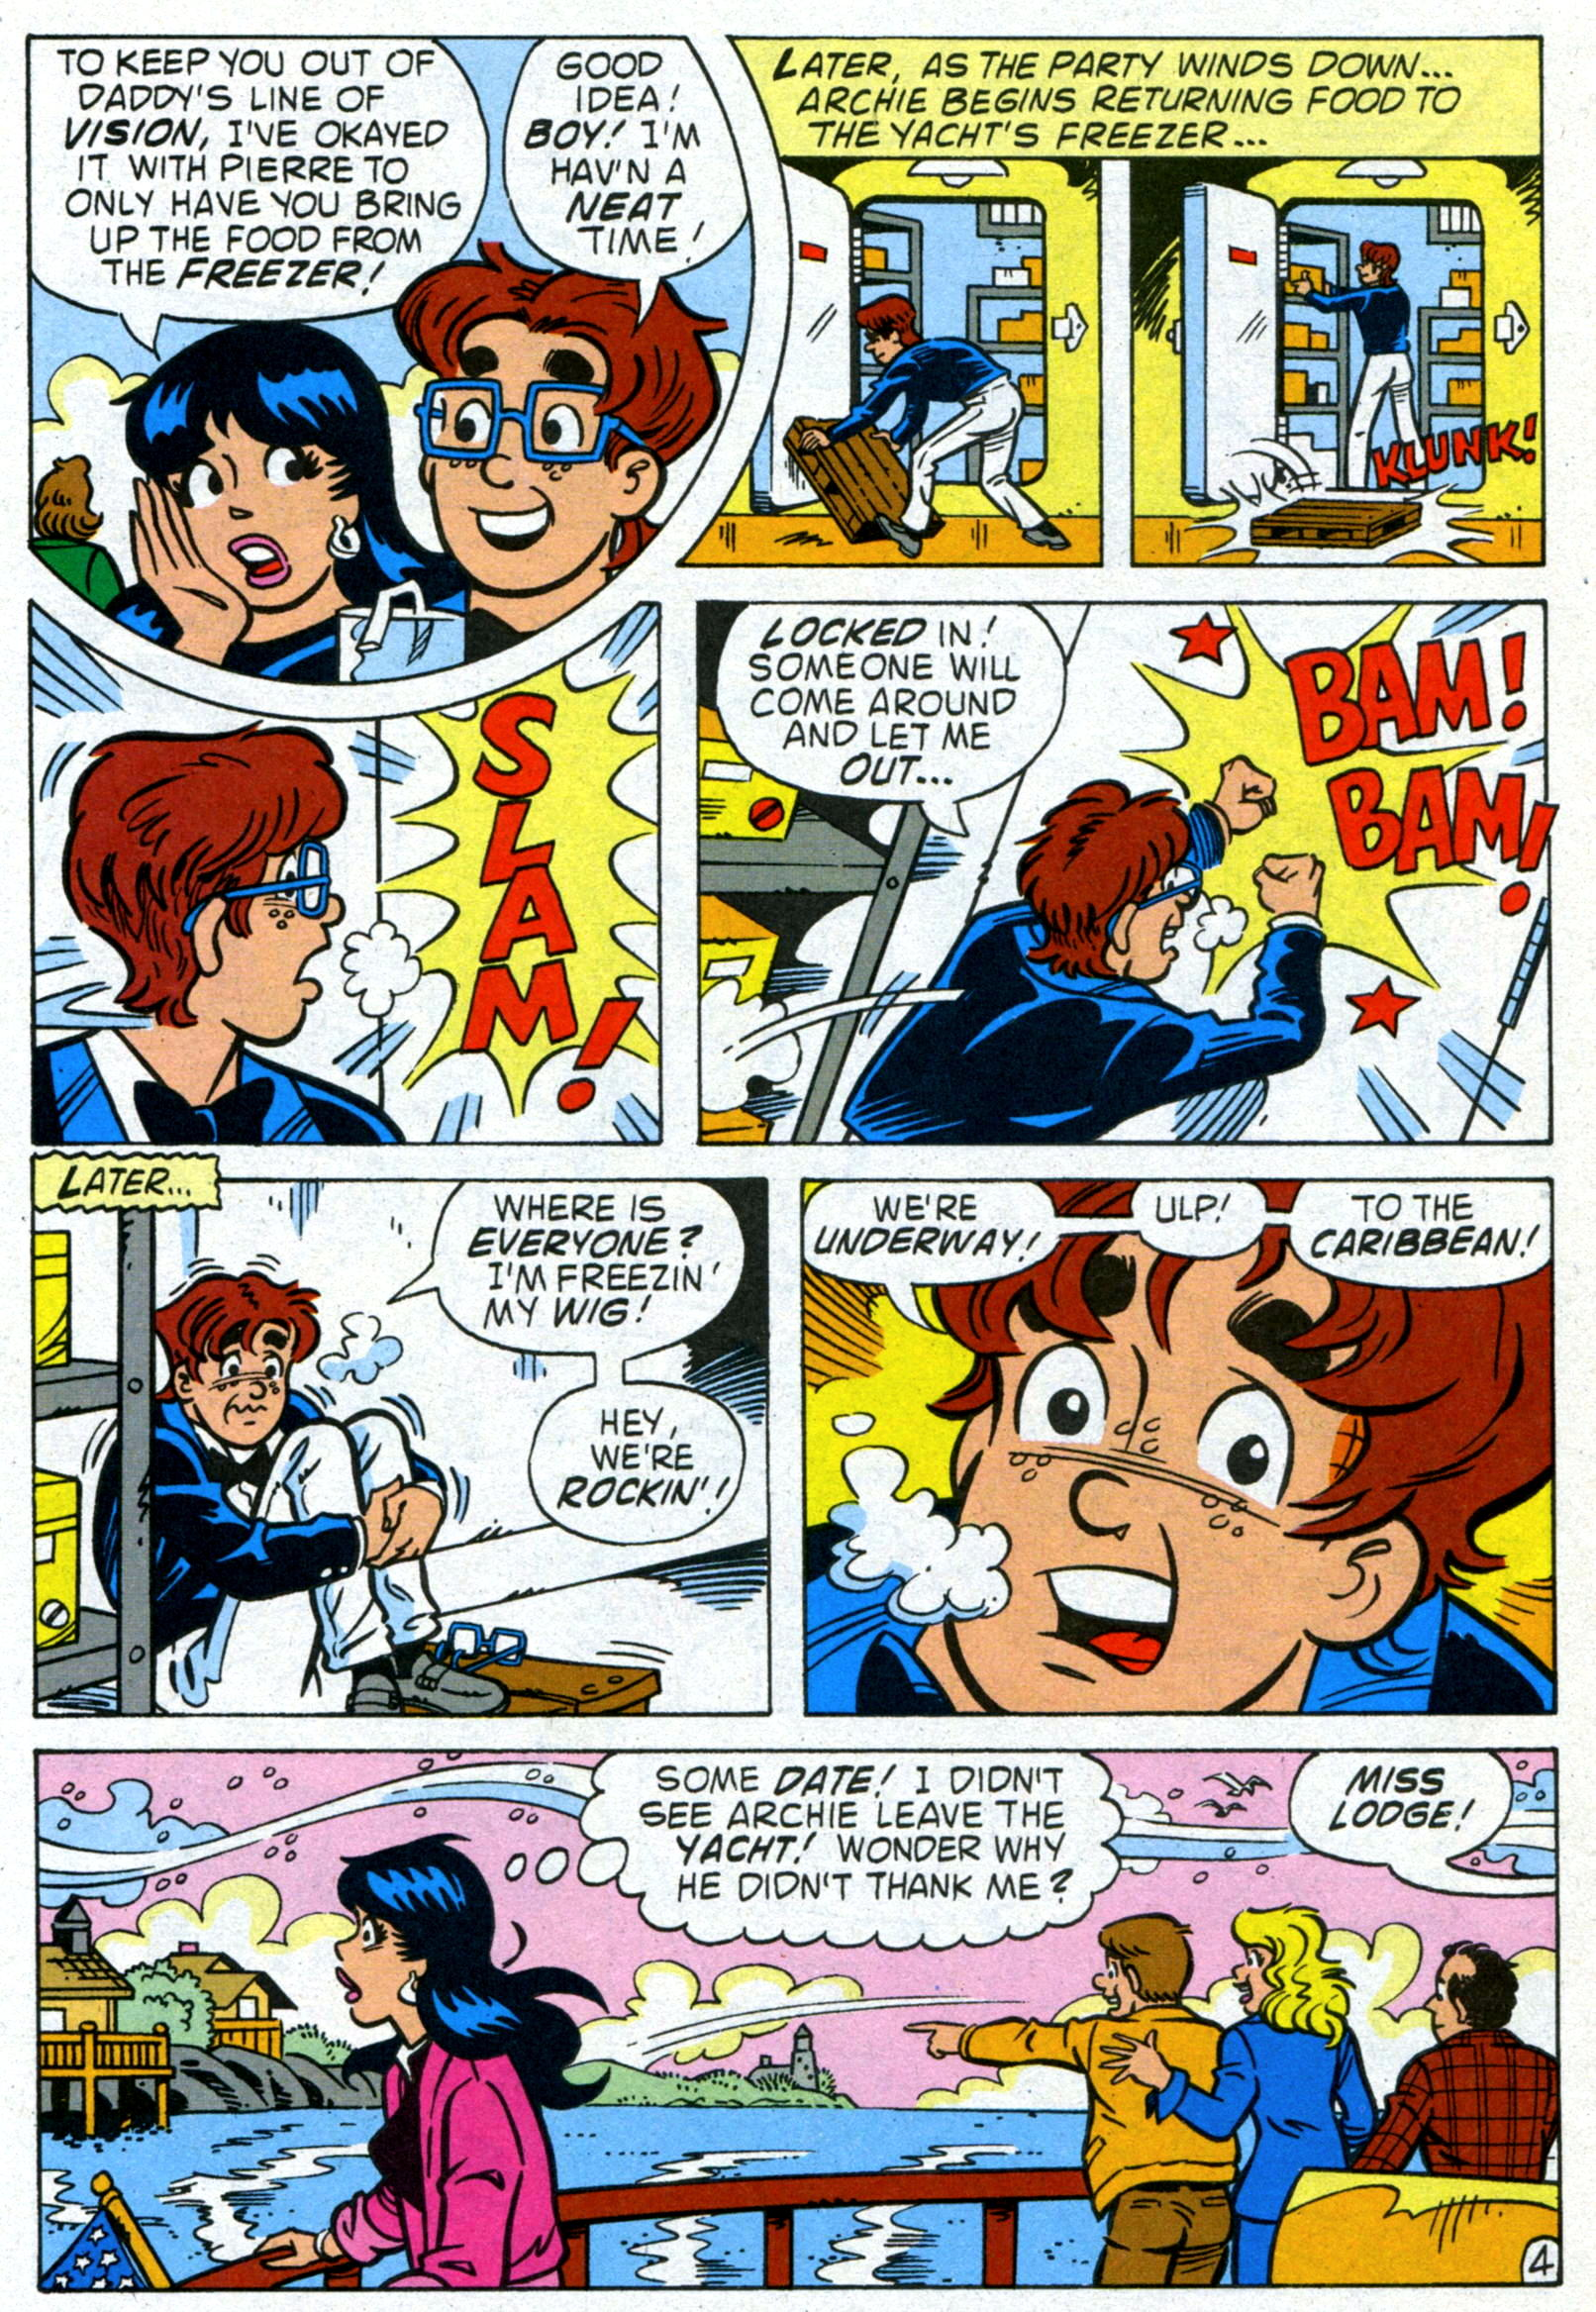 Read online World of Archie comic -  Issue #14 - 6